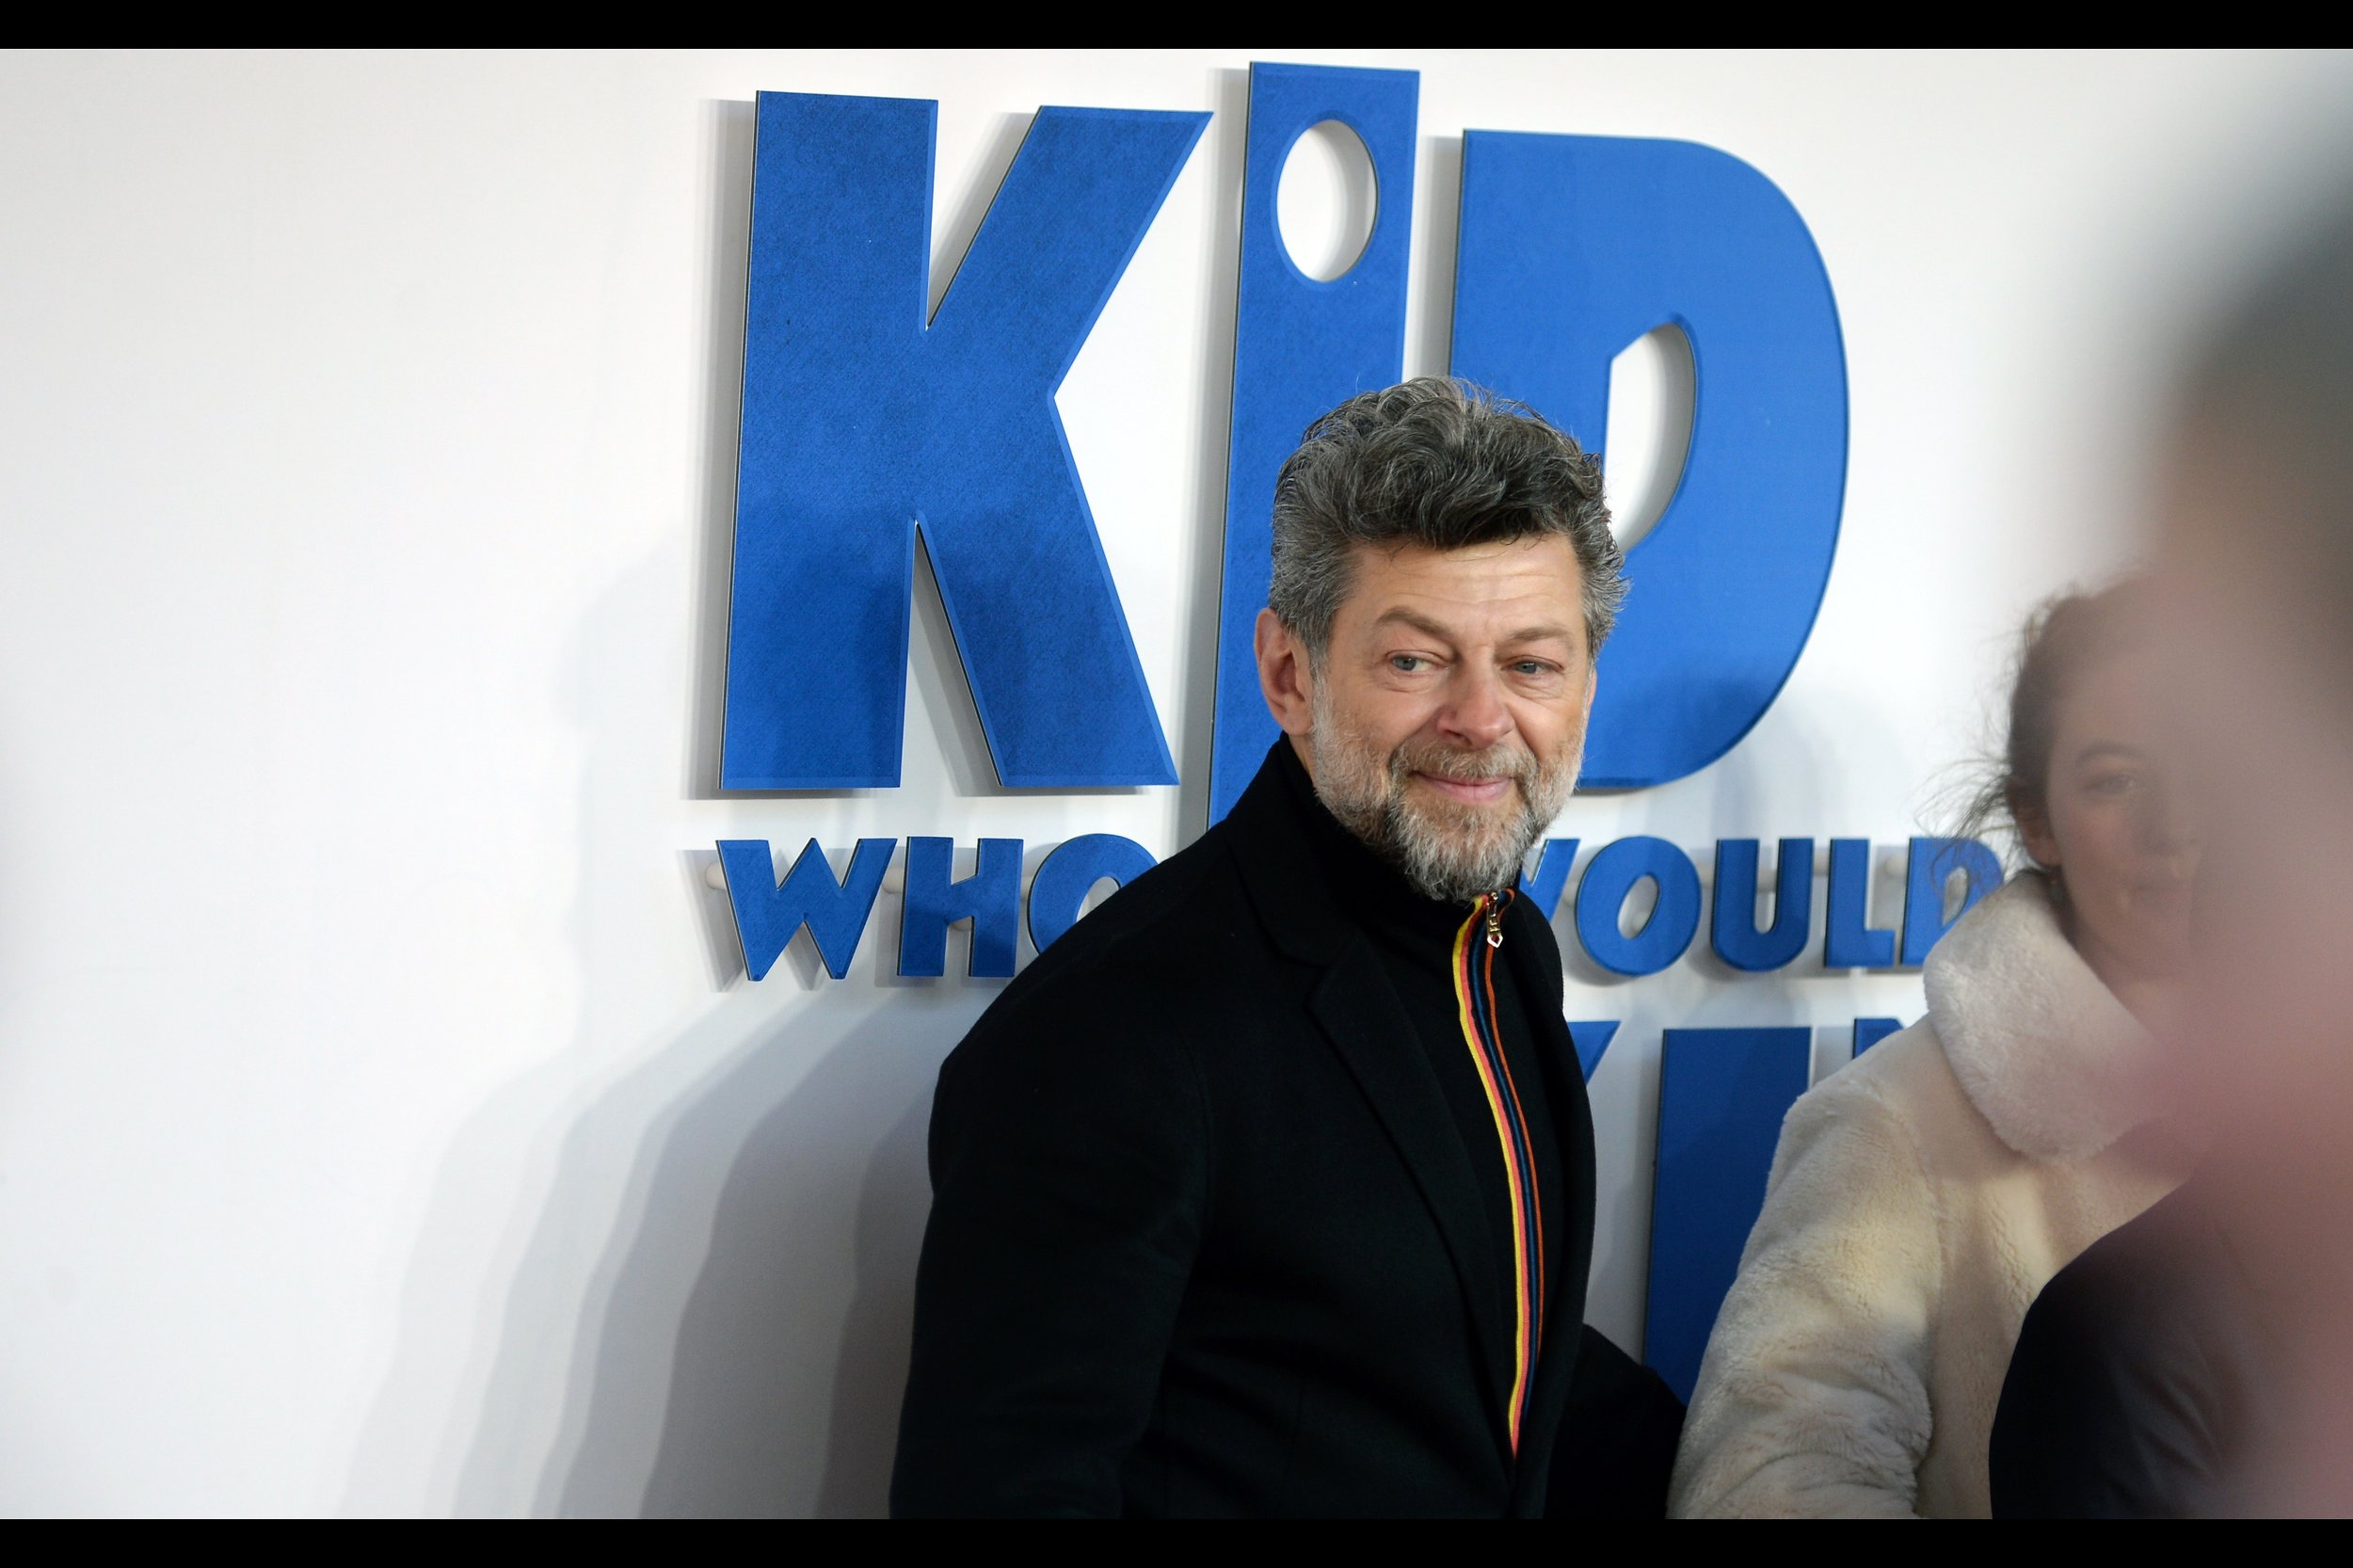 """It would be incorrect to say I had no input into this movie….""  Andy Serkis was Gollum in Lord of the Rings / The Hobbit, Ulysees Klaw in two Marvel films, Snoke in two Star Wars films and he directed 'Breathe' and 'Mowgli'. His attendance here, however, is due to his son, who is in this movie."